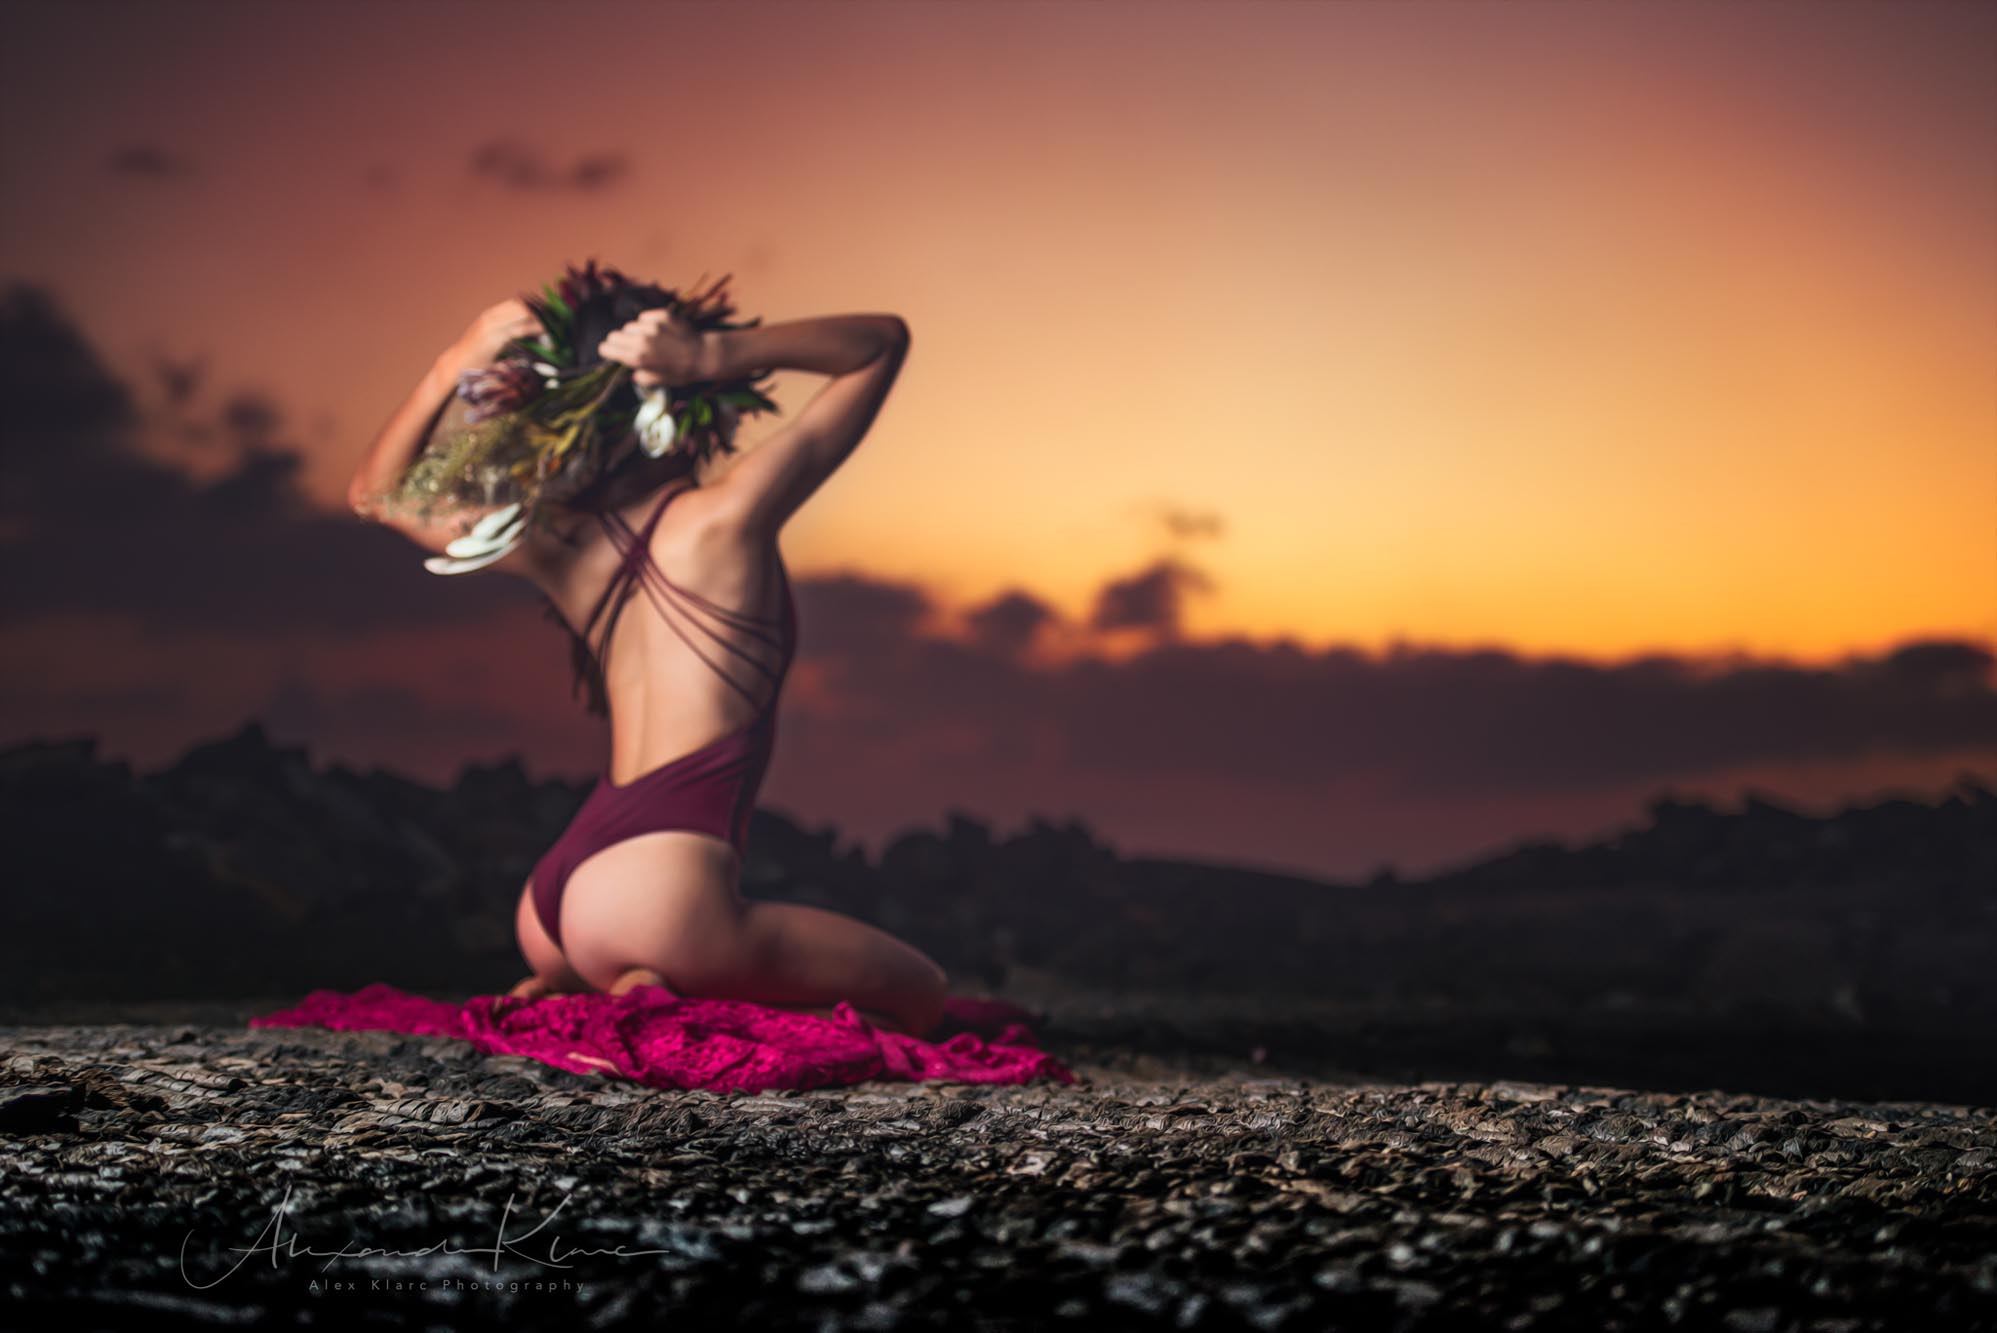 hawaii-sunset-lava-flowers-model-AlexKlarc©Photography.jpg